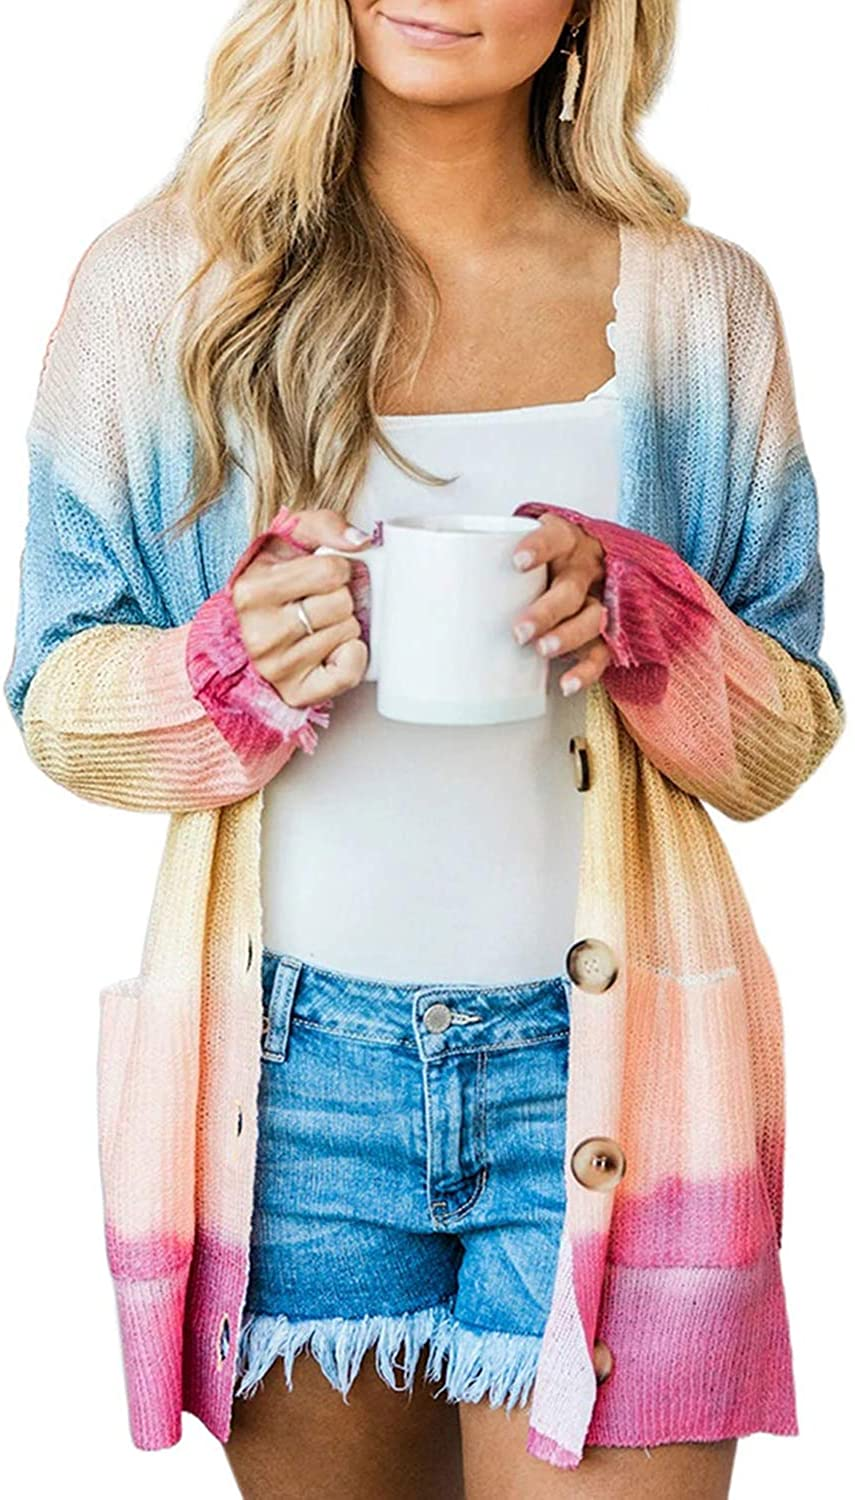 Elapsy Womens Tie Dye Print Button Open Front Cardigan Long Sleeve Knitted Shirt Sweater Coat